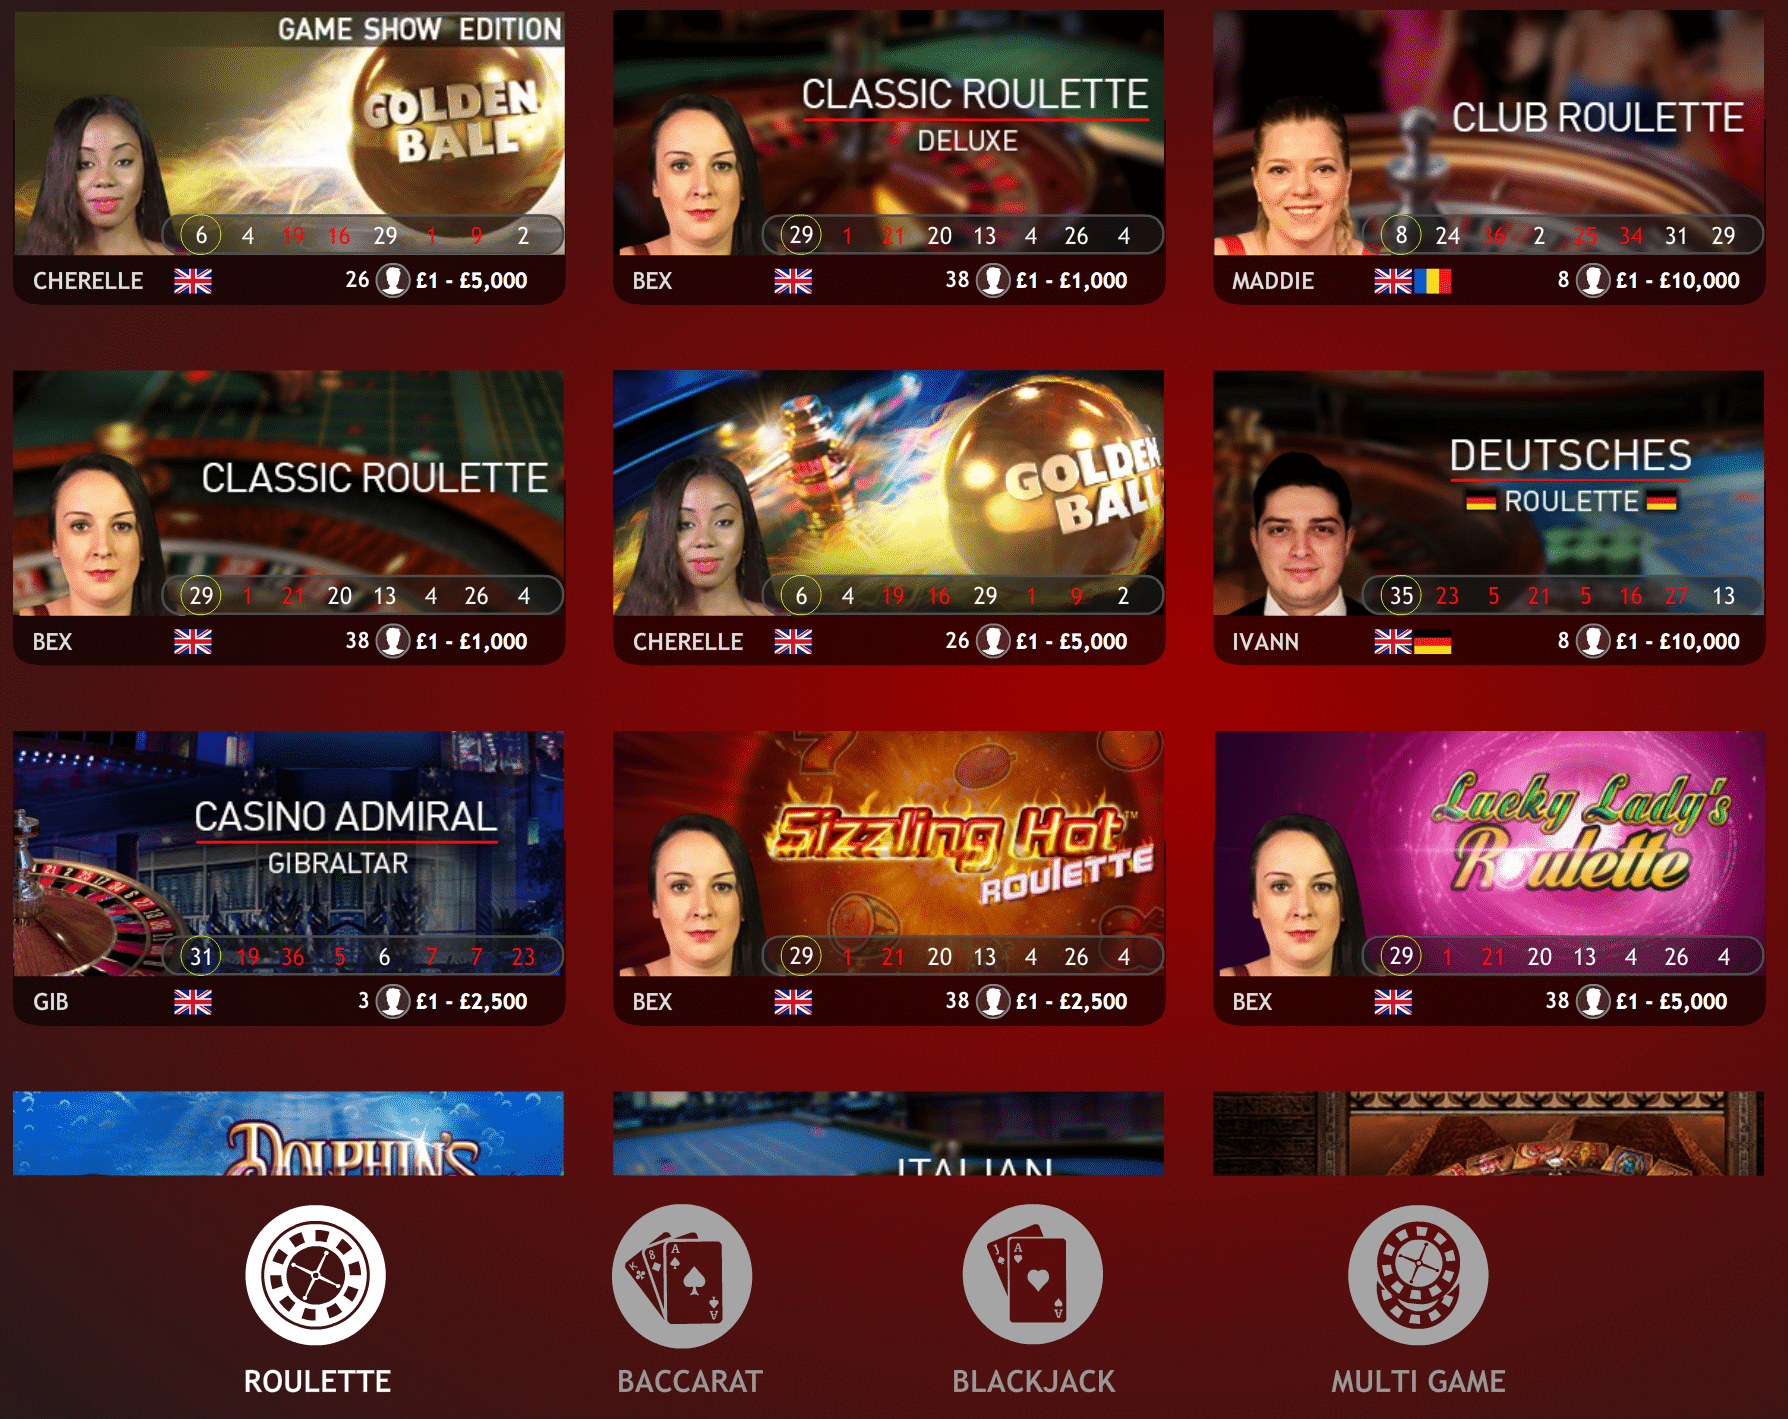 Roulette Archives - Get Free Spins at the Best UK Online Casino | PlayOJO